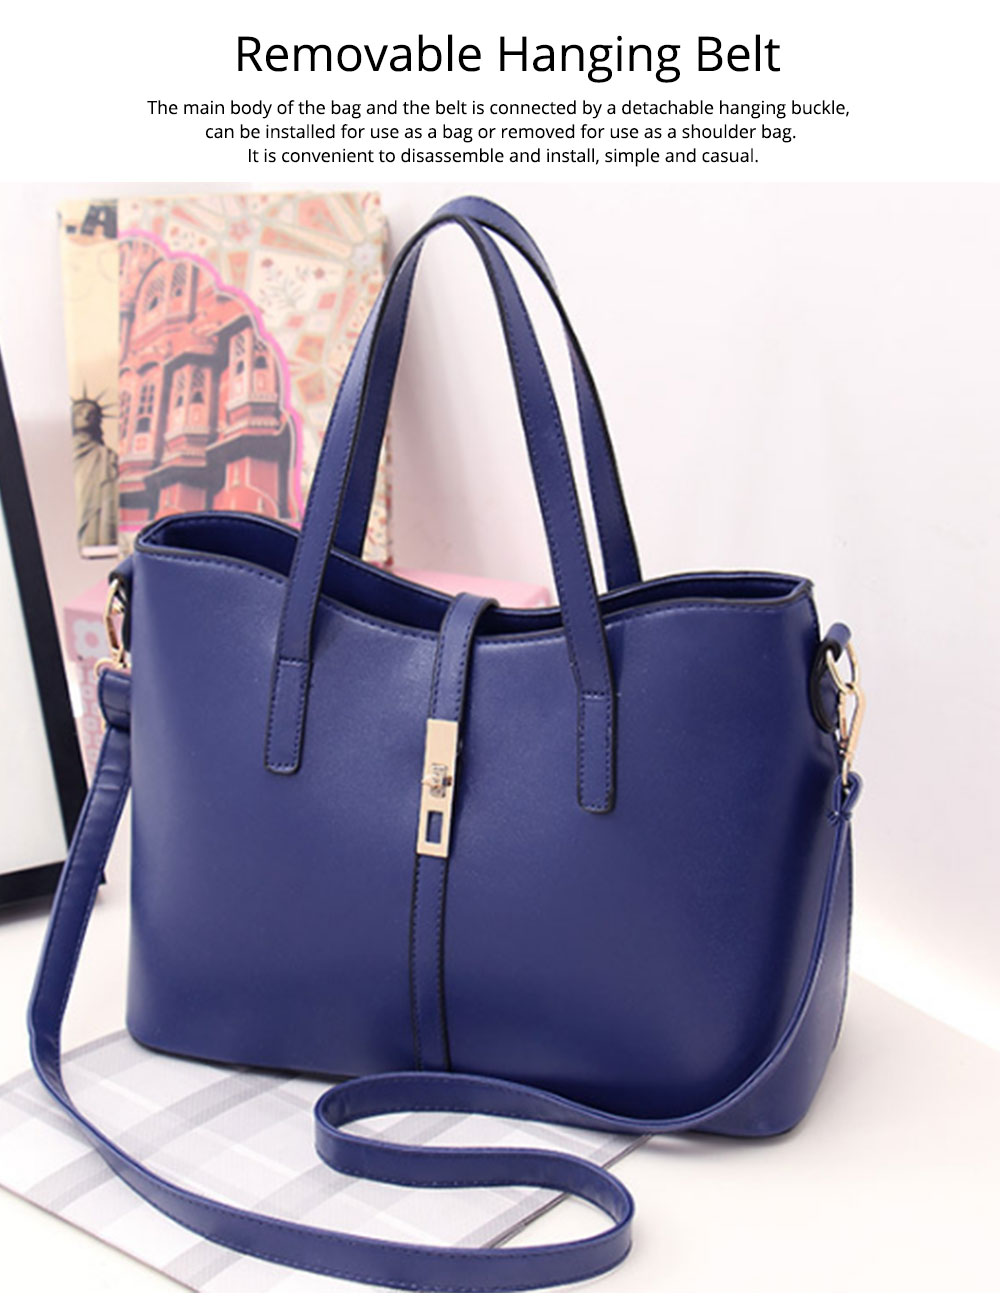 Simple Women Accessories Lady Tote Bag Sets - 3pcs Solid PU Leather Shoulder Bag & Cross Body Pouch & Strapped Clutch 5